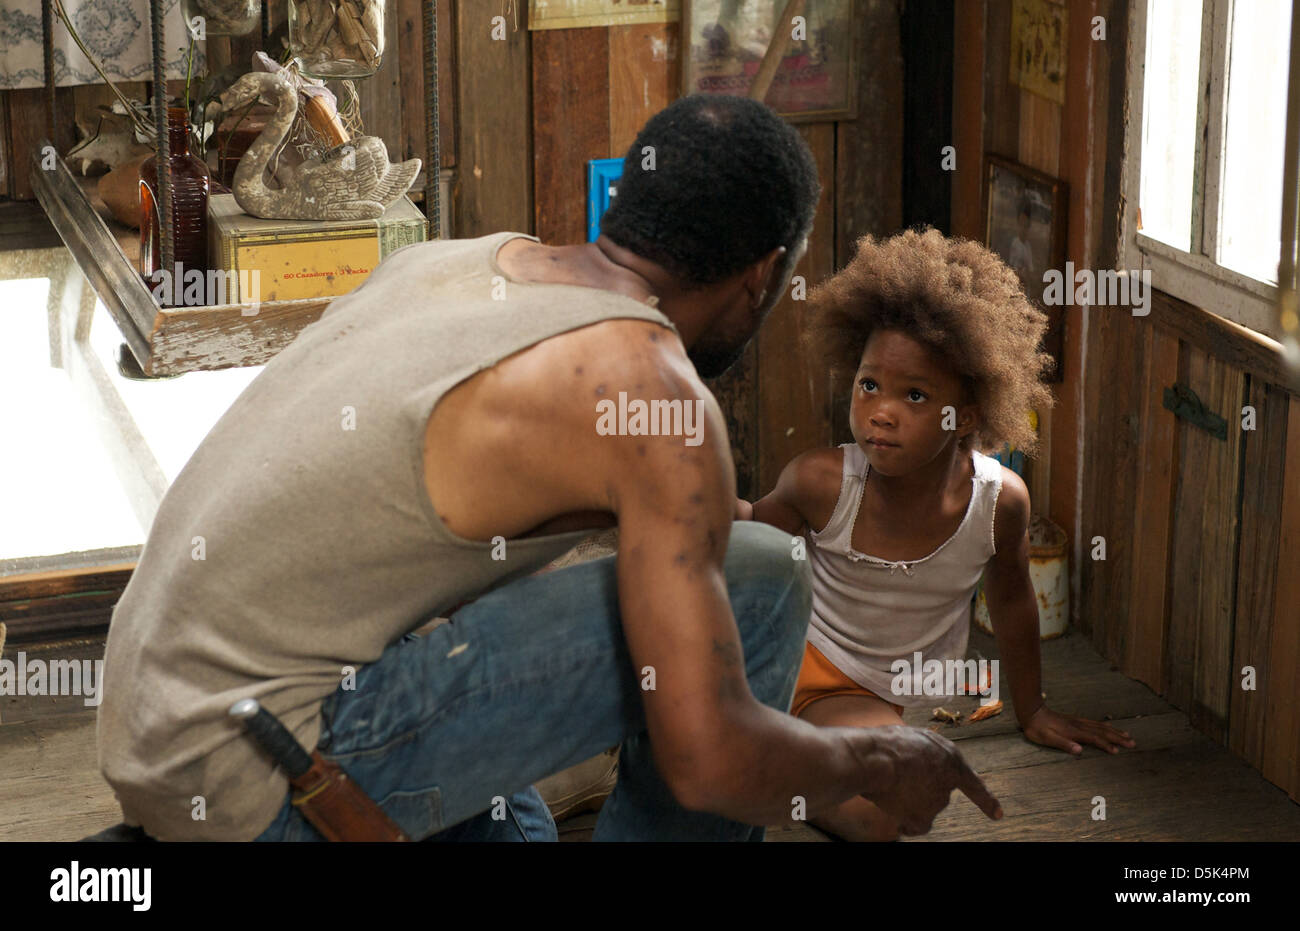 DWIGHT HENRY & QUVENZHANE WALLIS BEASTS OF THE SOUTHERN WILD (2012) - Stock Image